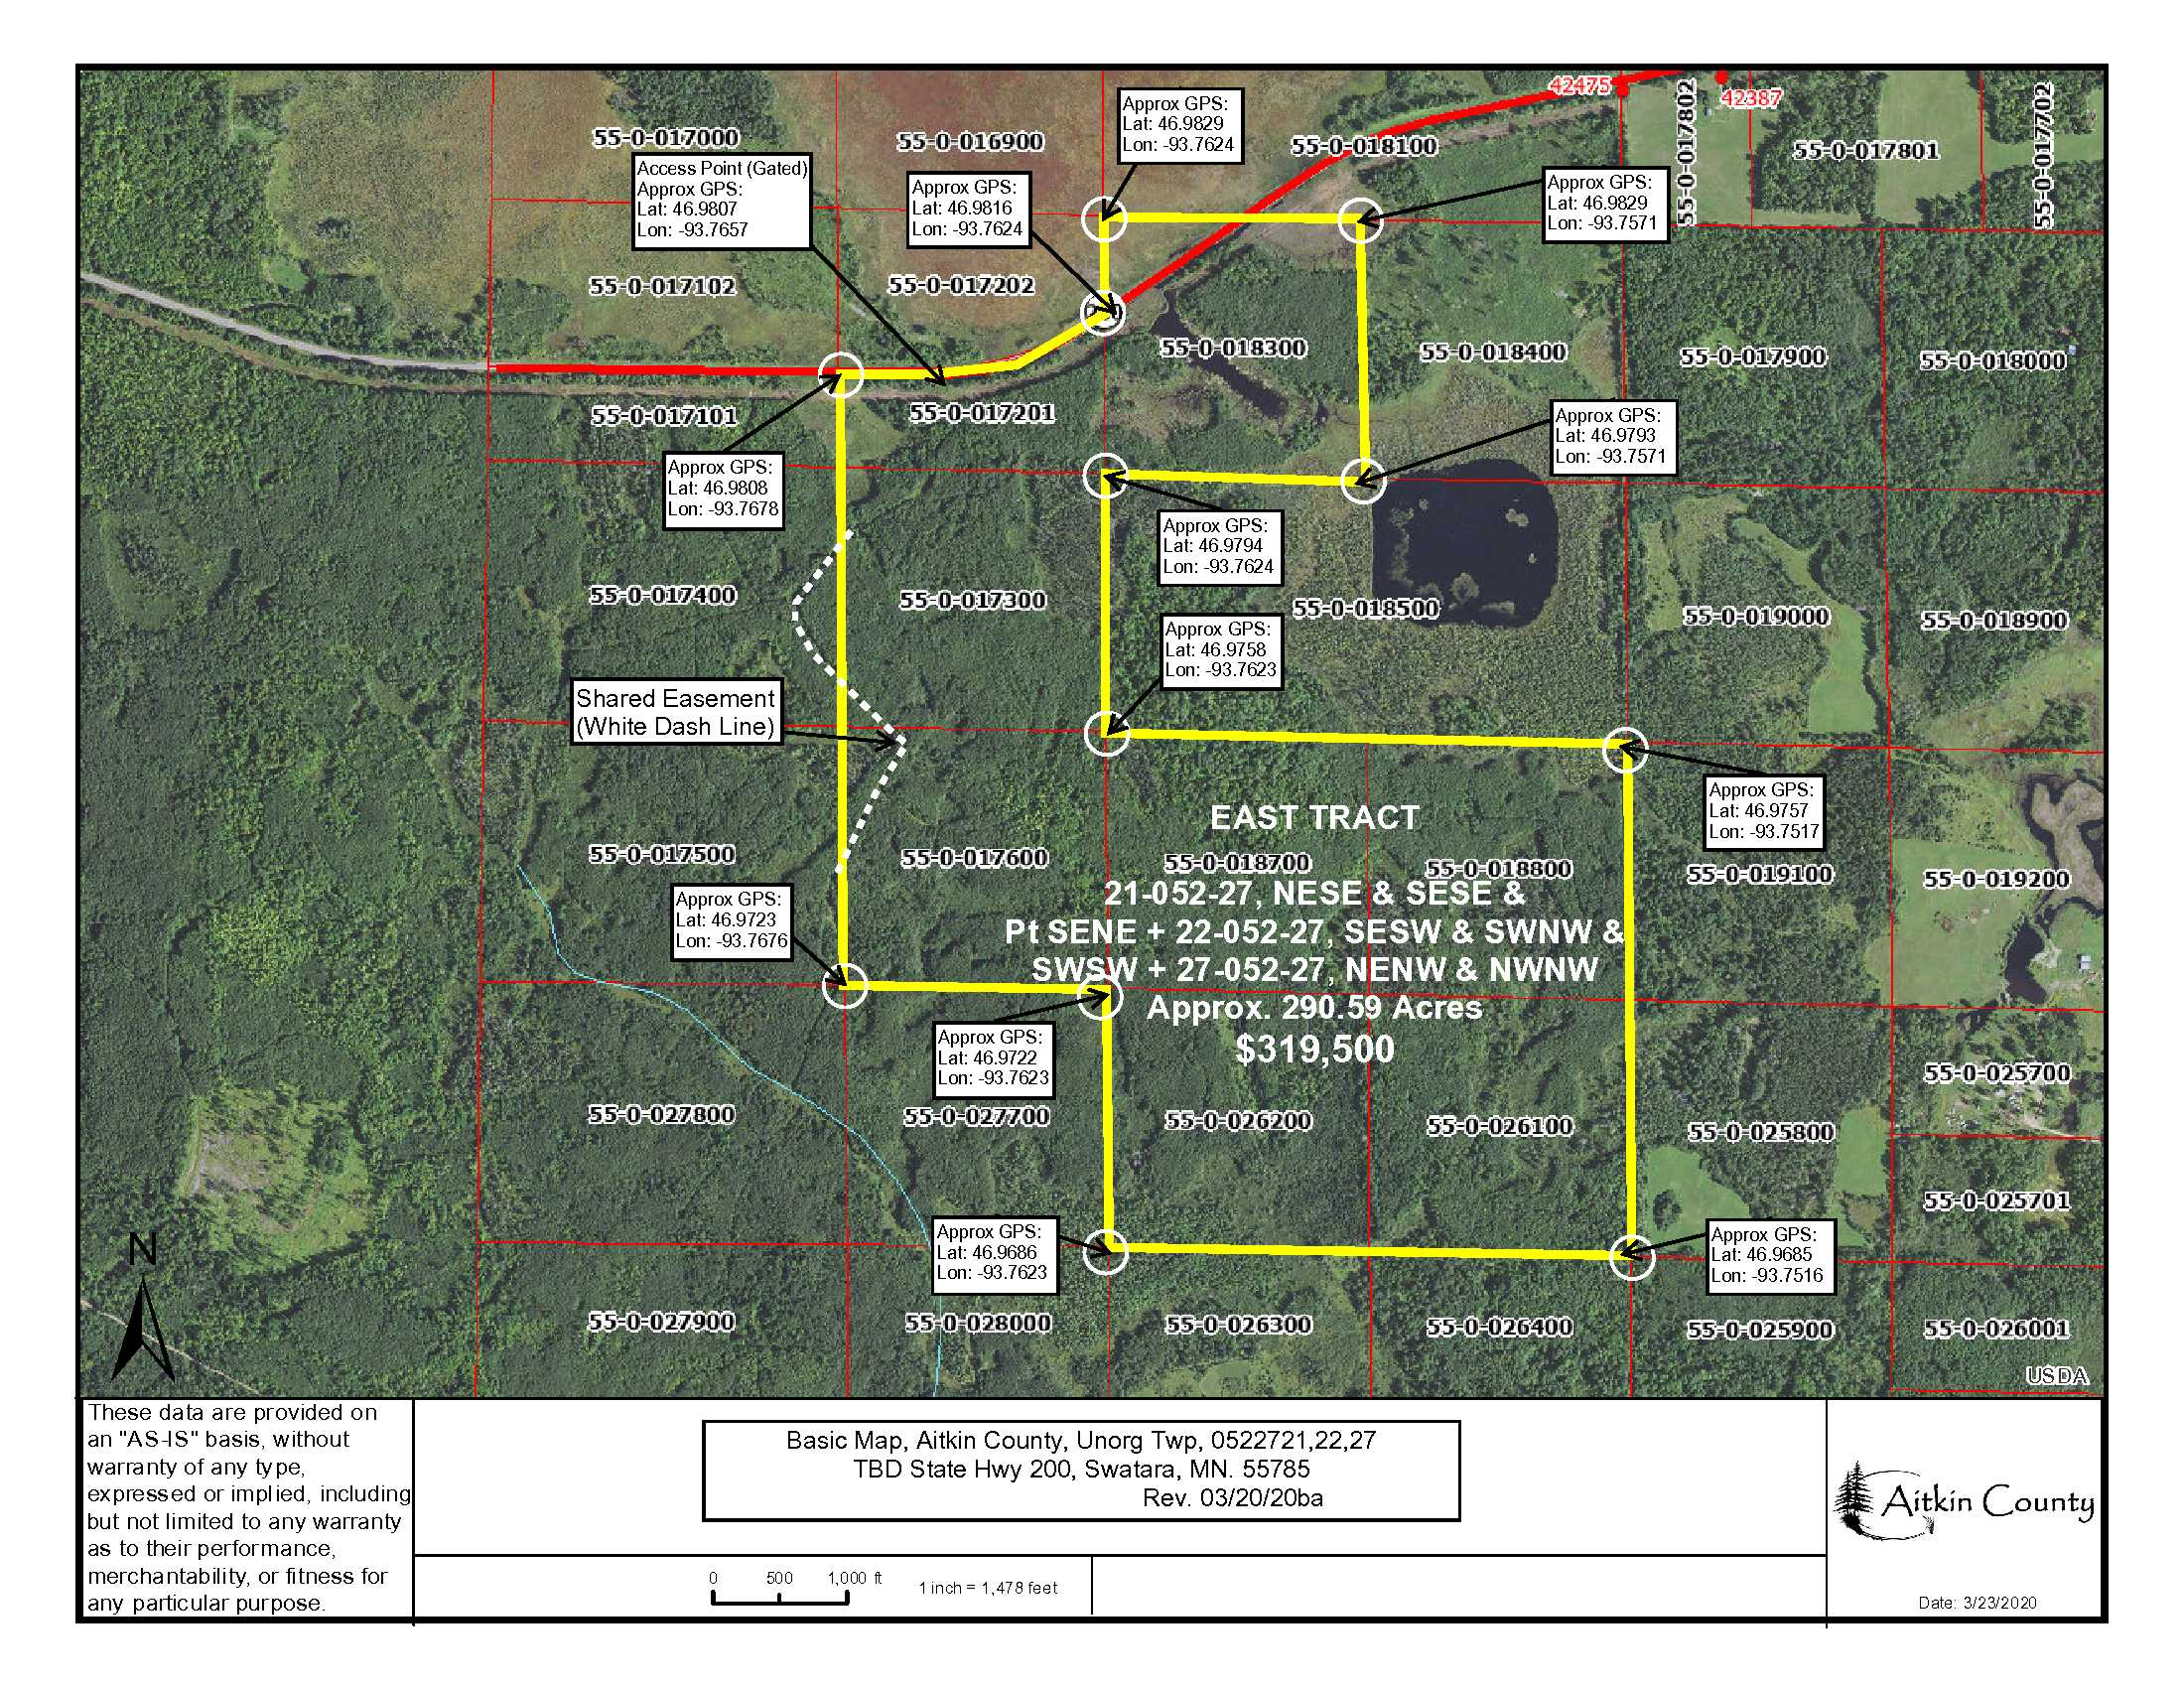 East Tract, 21&22&27-052-27, State Hwy #200, Unorganized, Swatara, Aitkin